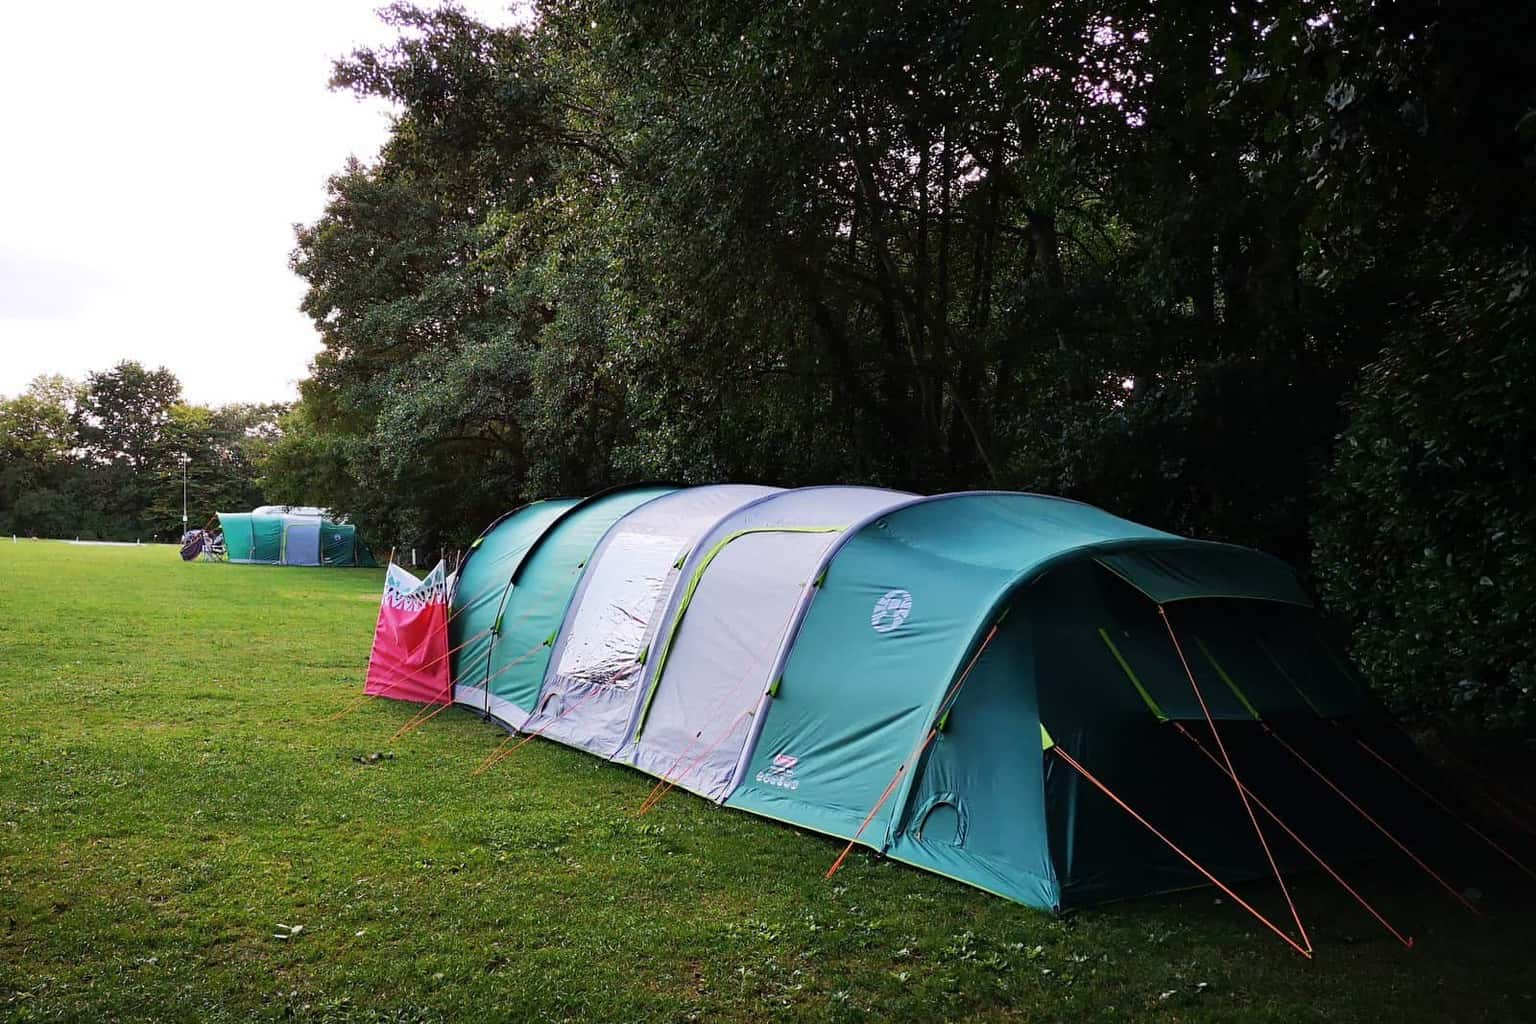 Kevledon Hatch Camping and Caravanning Club Site